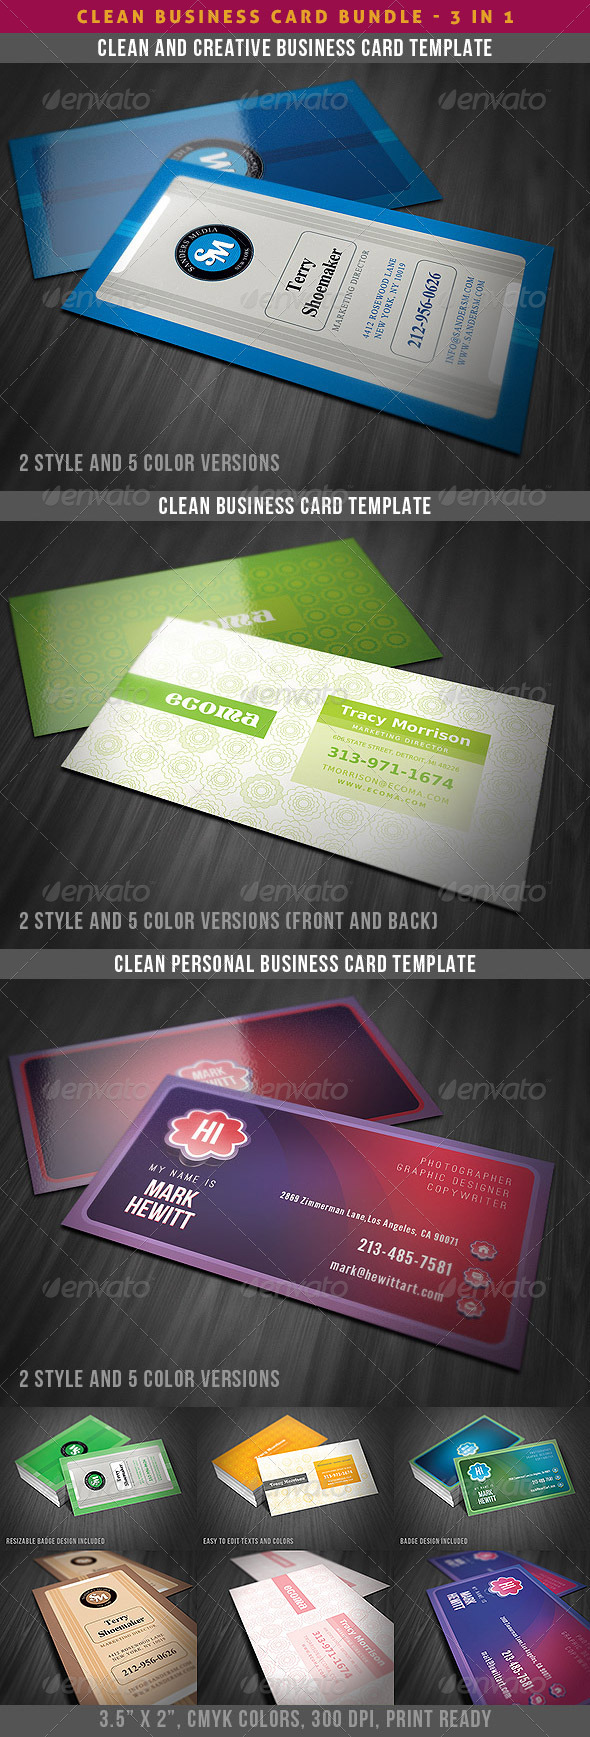 GraphicRiver Clean & Creative Business Cards Bundle 4022783